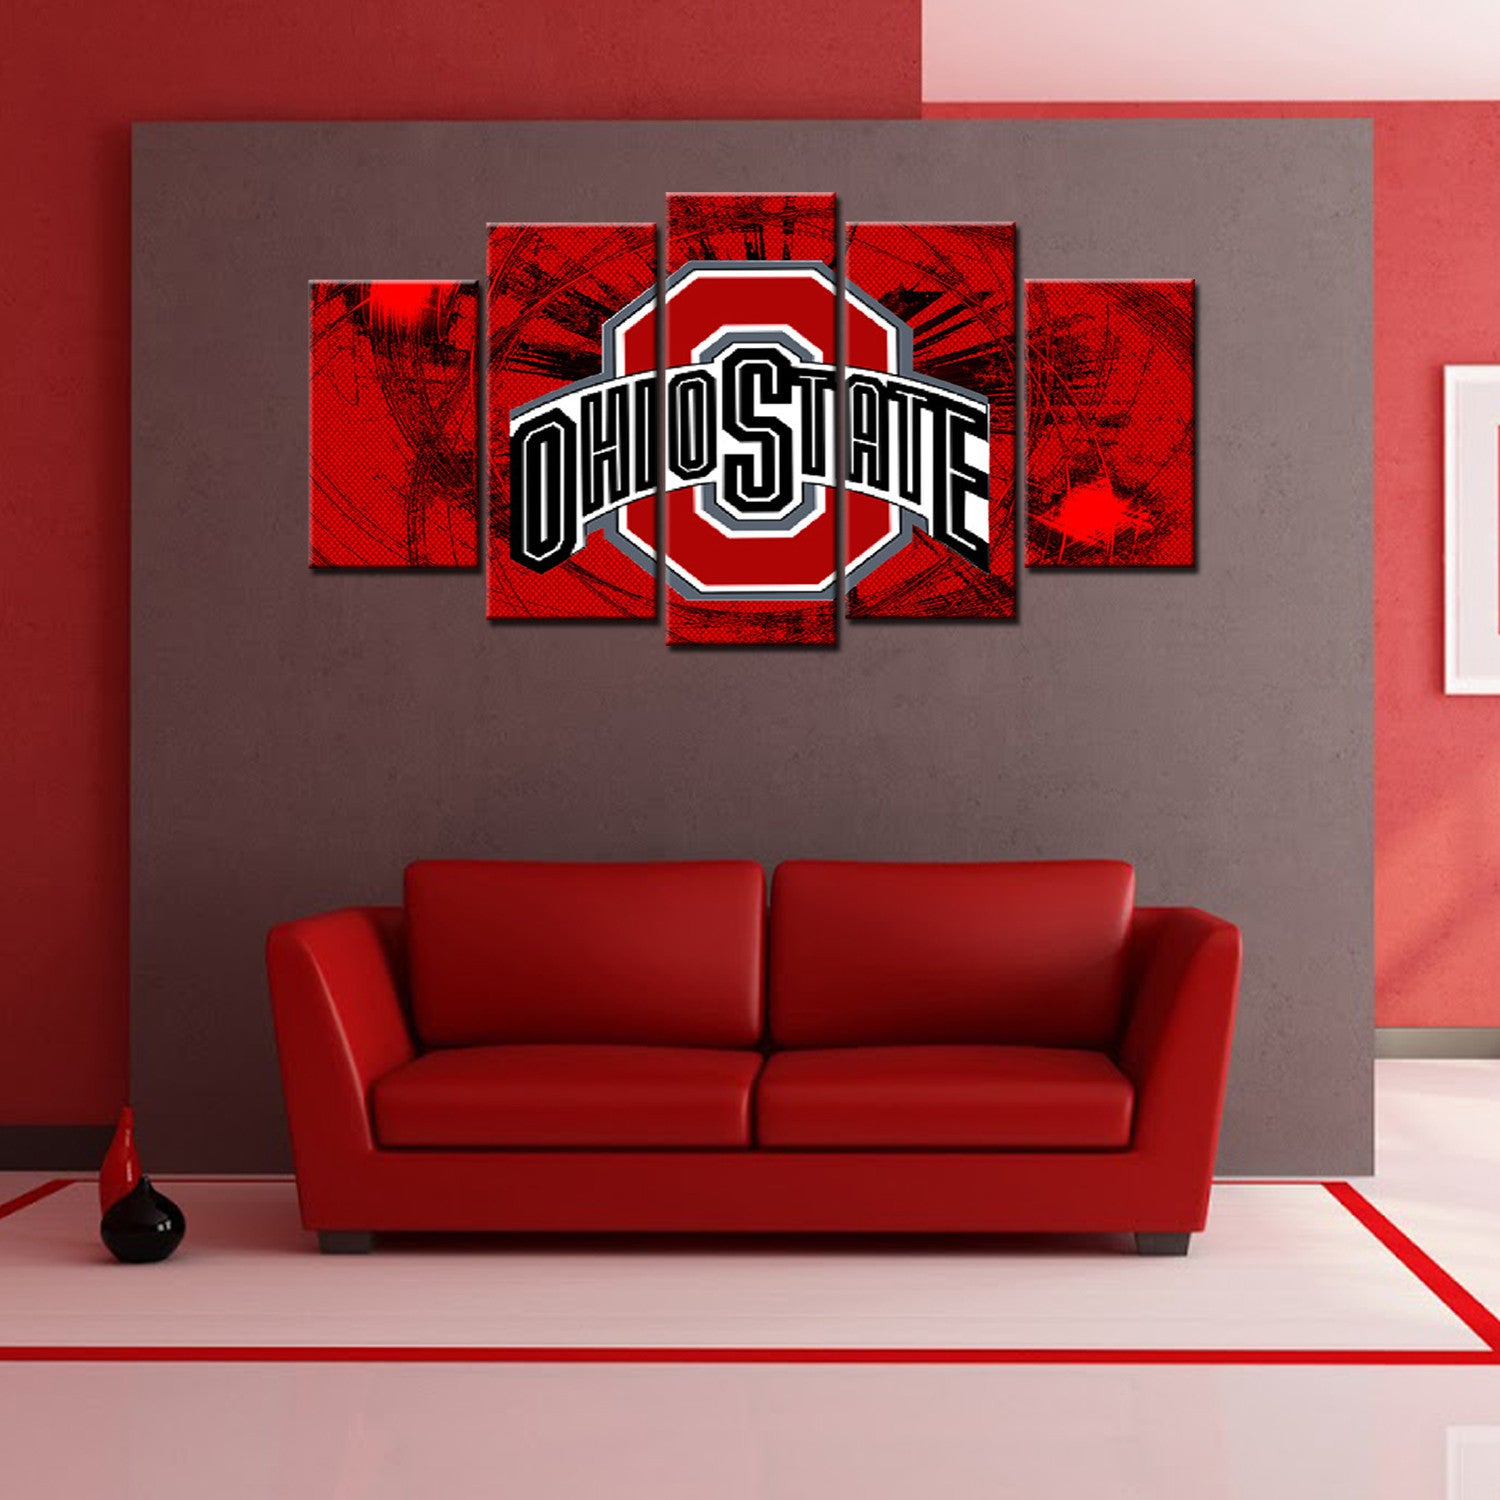 Ohio State Wall Art ohio state 5 pieces canvas wall art hd printed - offersplace